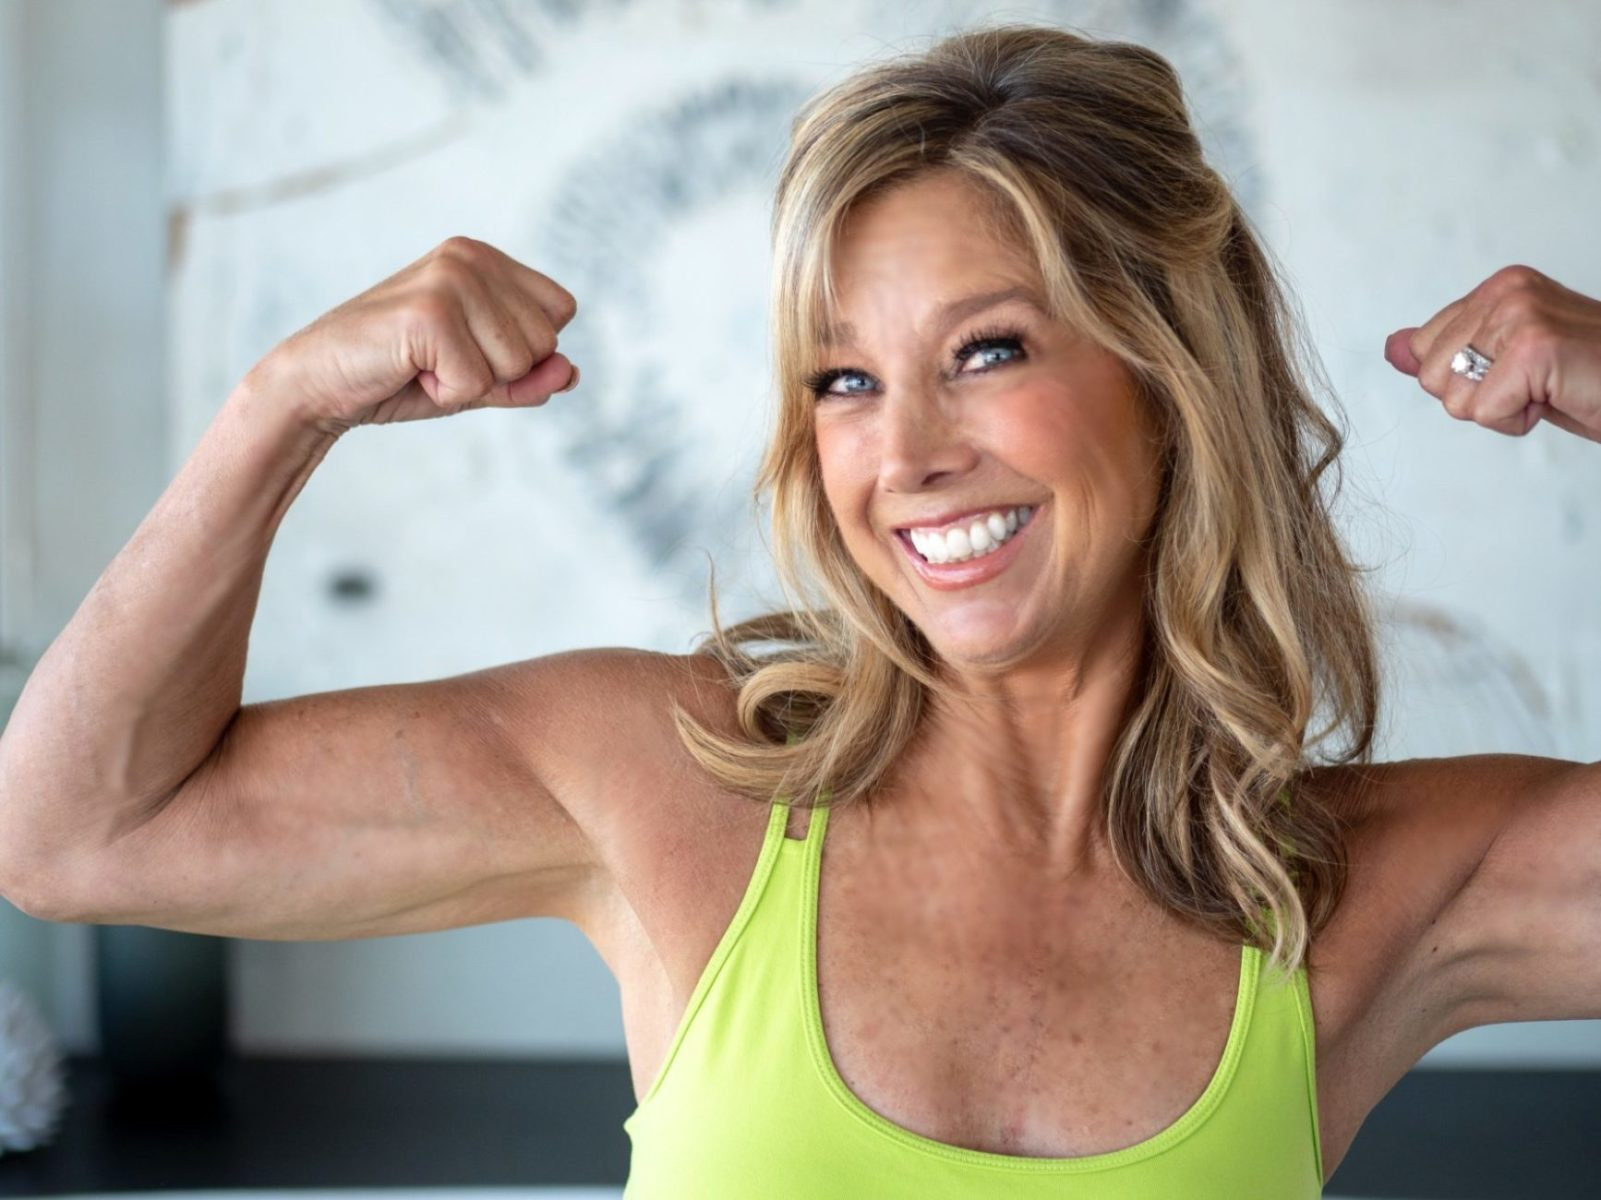 Healthy Aging Tips For Women: 40s, 50s, 60s & Beyond!